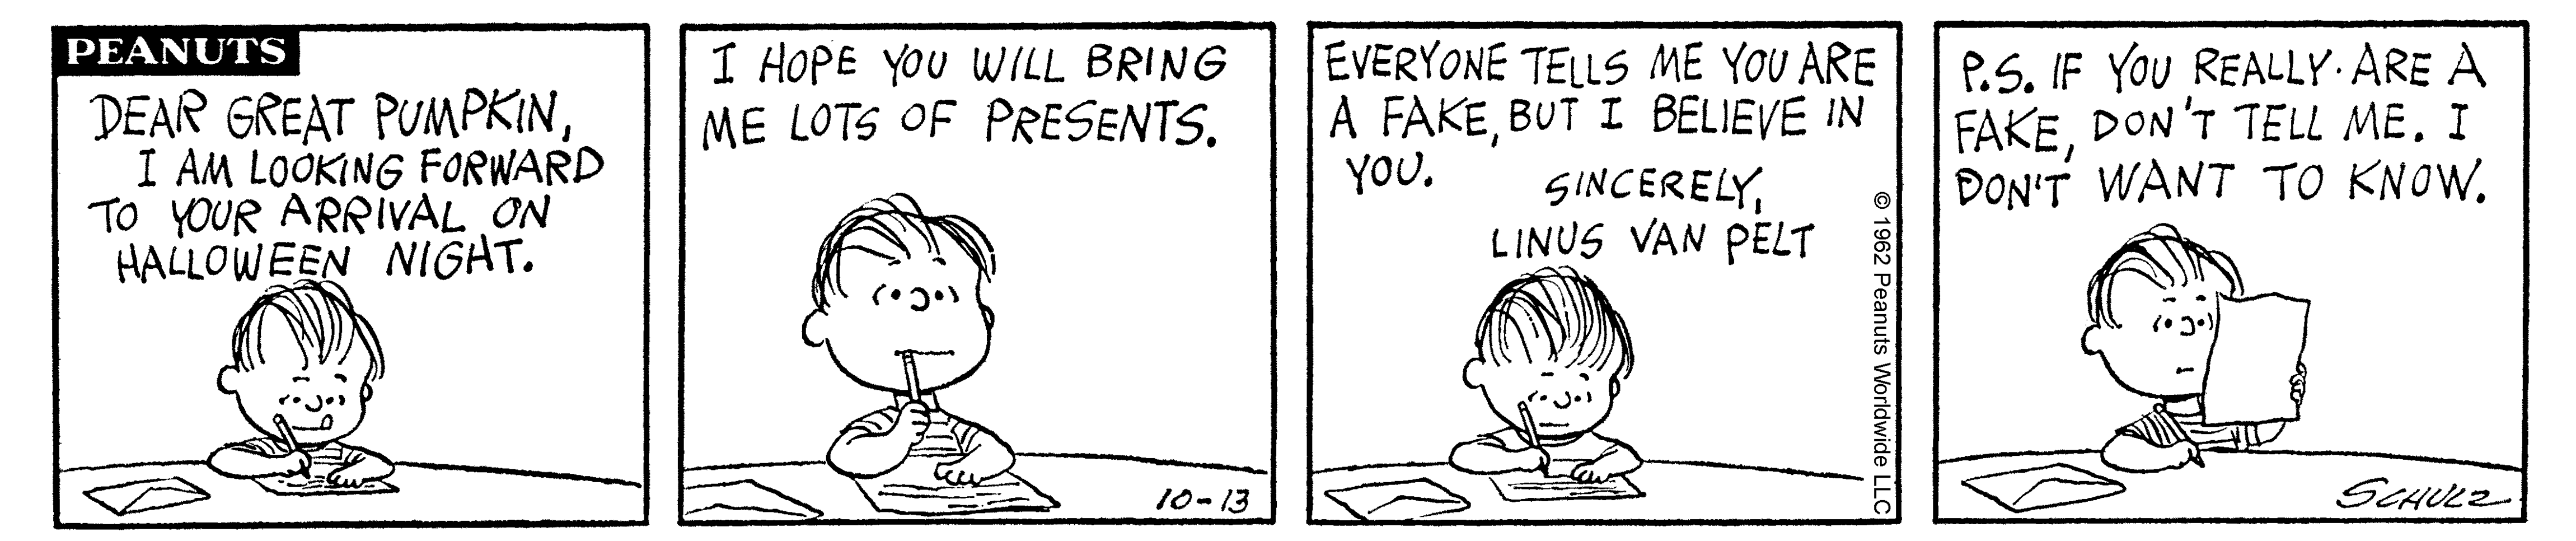 A black and white comic strip of a boy sitting at a table writing.